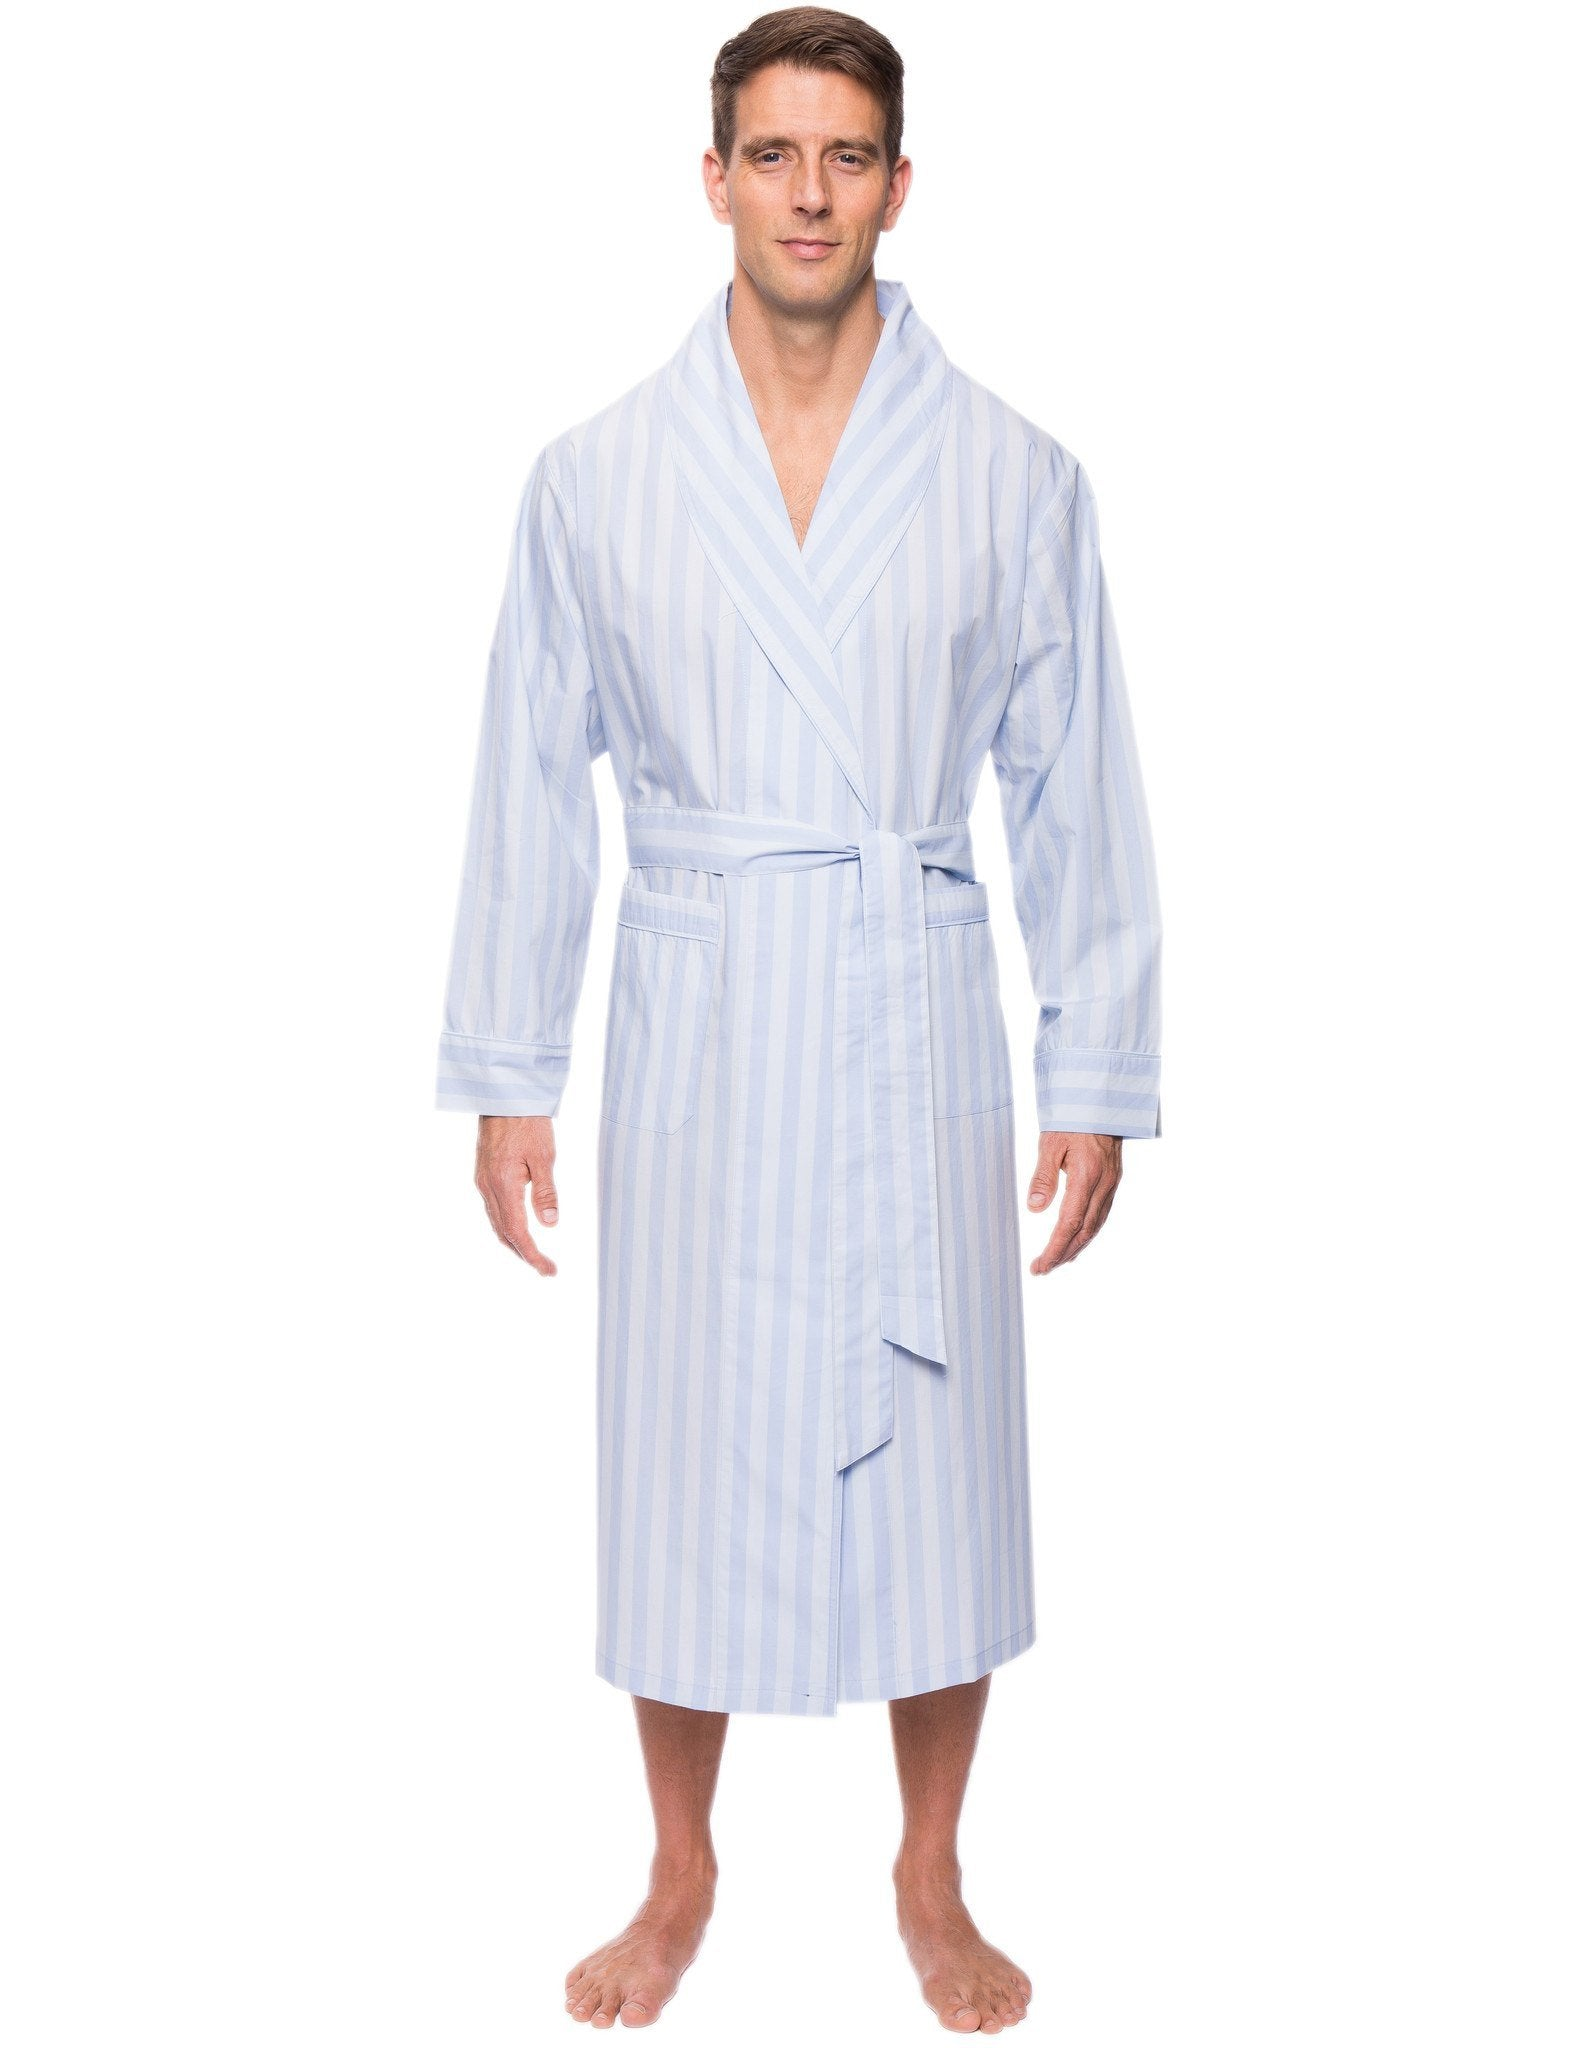 Mens Premium 100% Cotton Robe - Stripes Chambray Blue